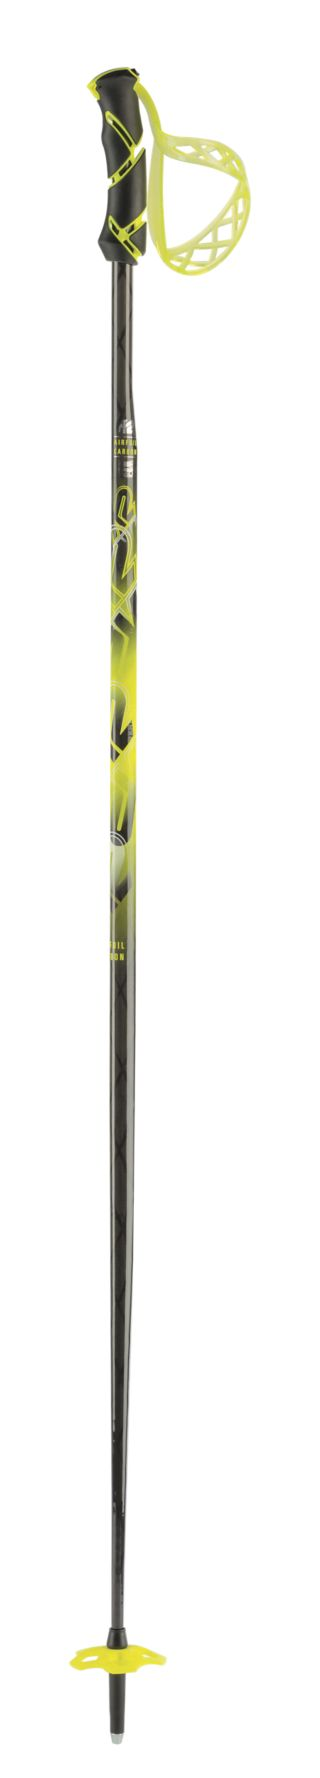 K2 Skis - Power 10 Airfoil Carbon Ski Pole